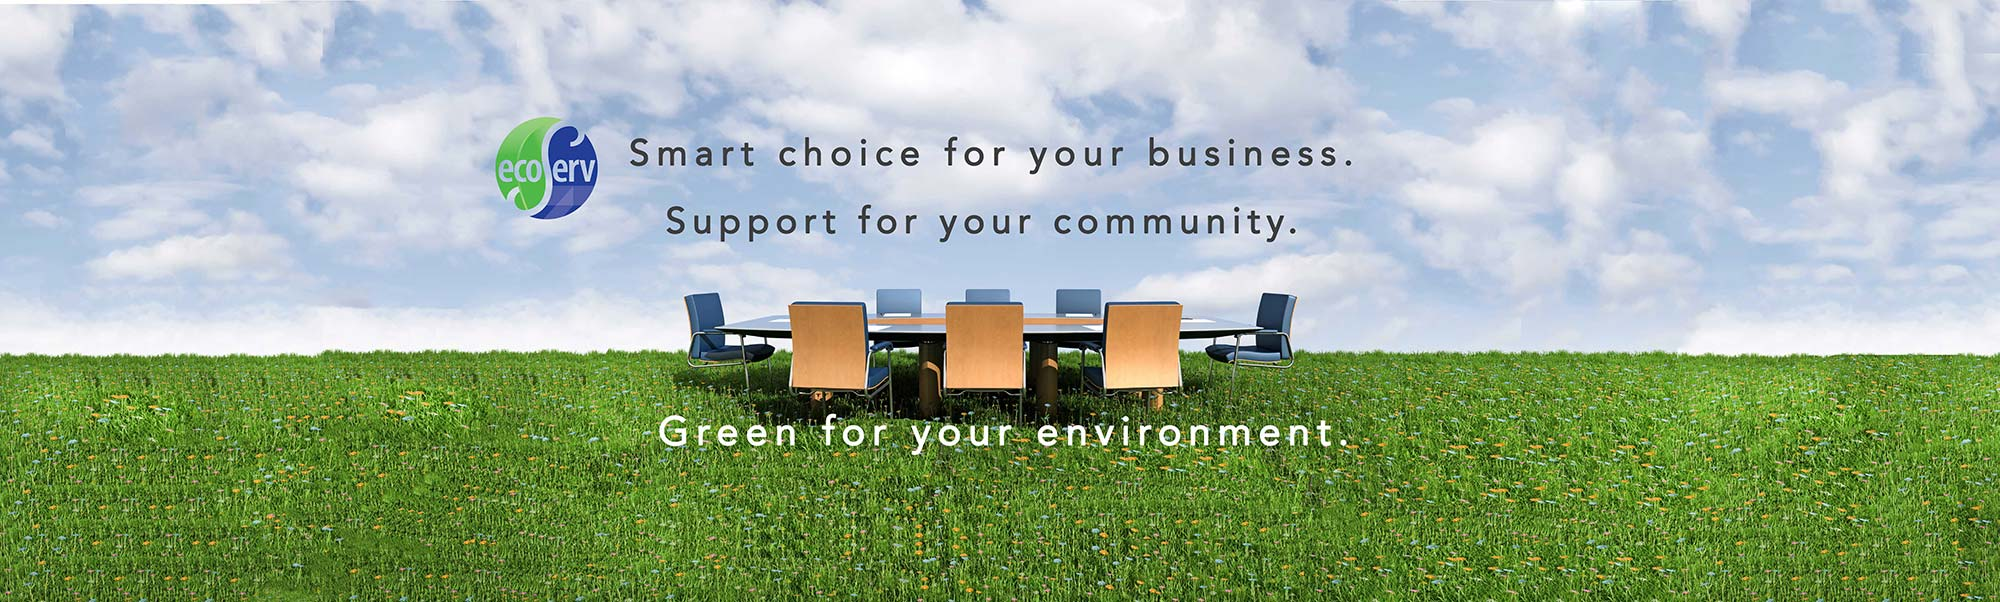 Smart choice for your business. Support for your community. Green for your environment.